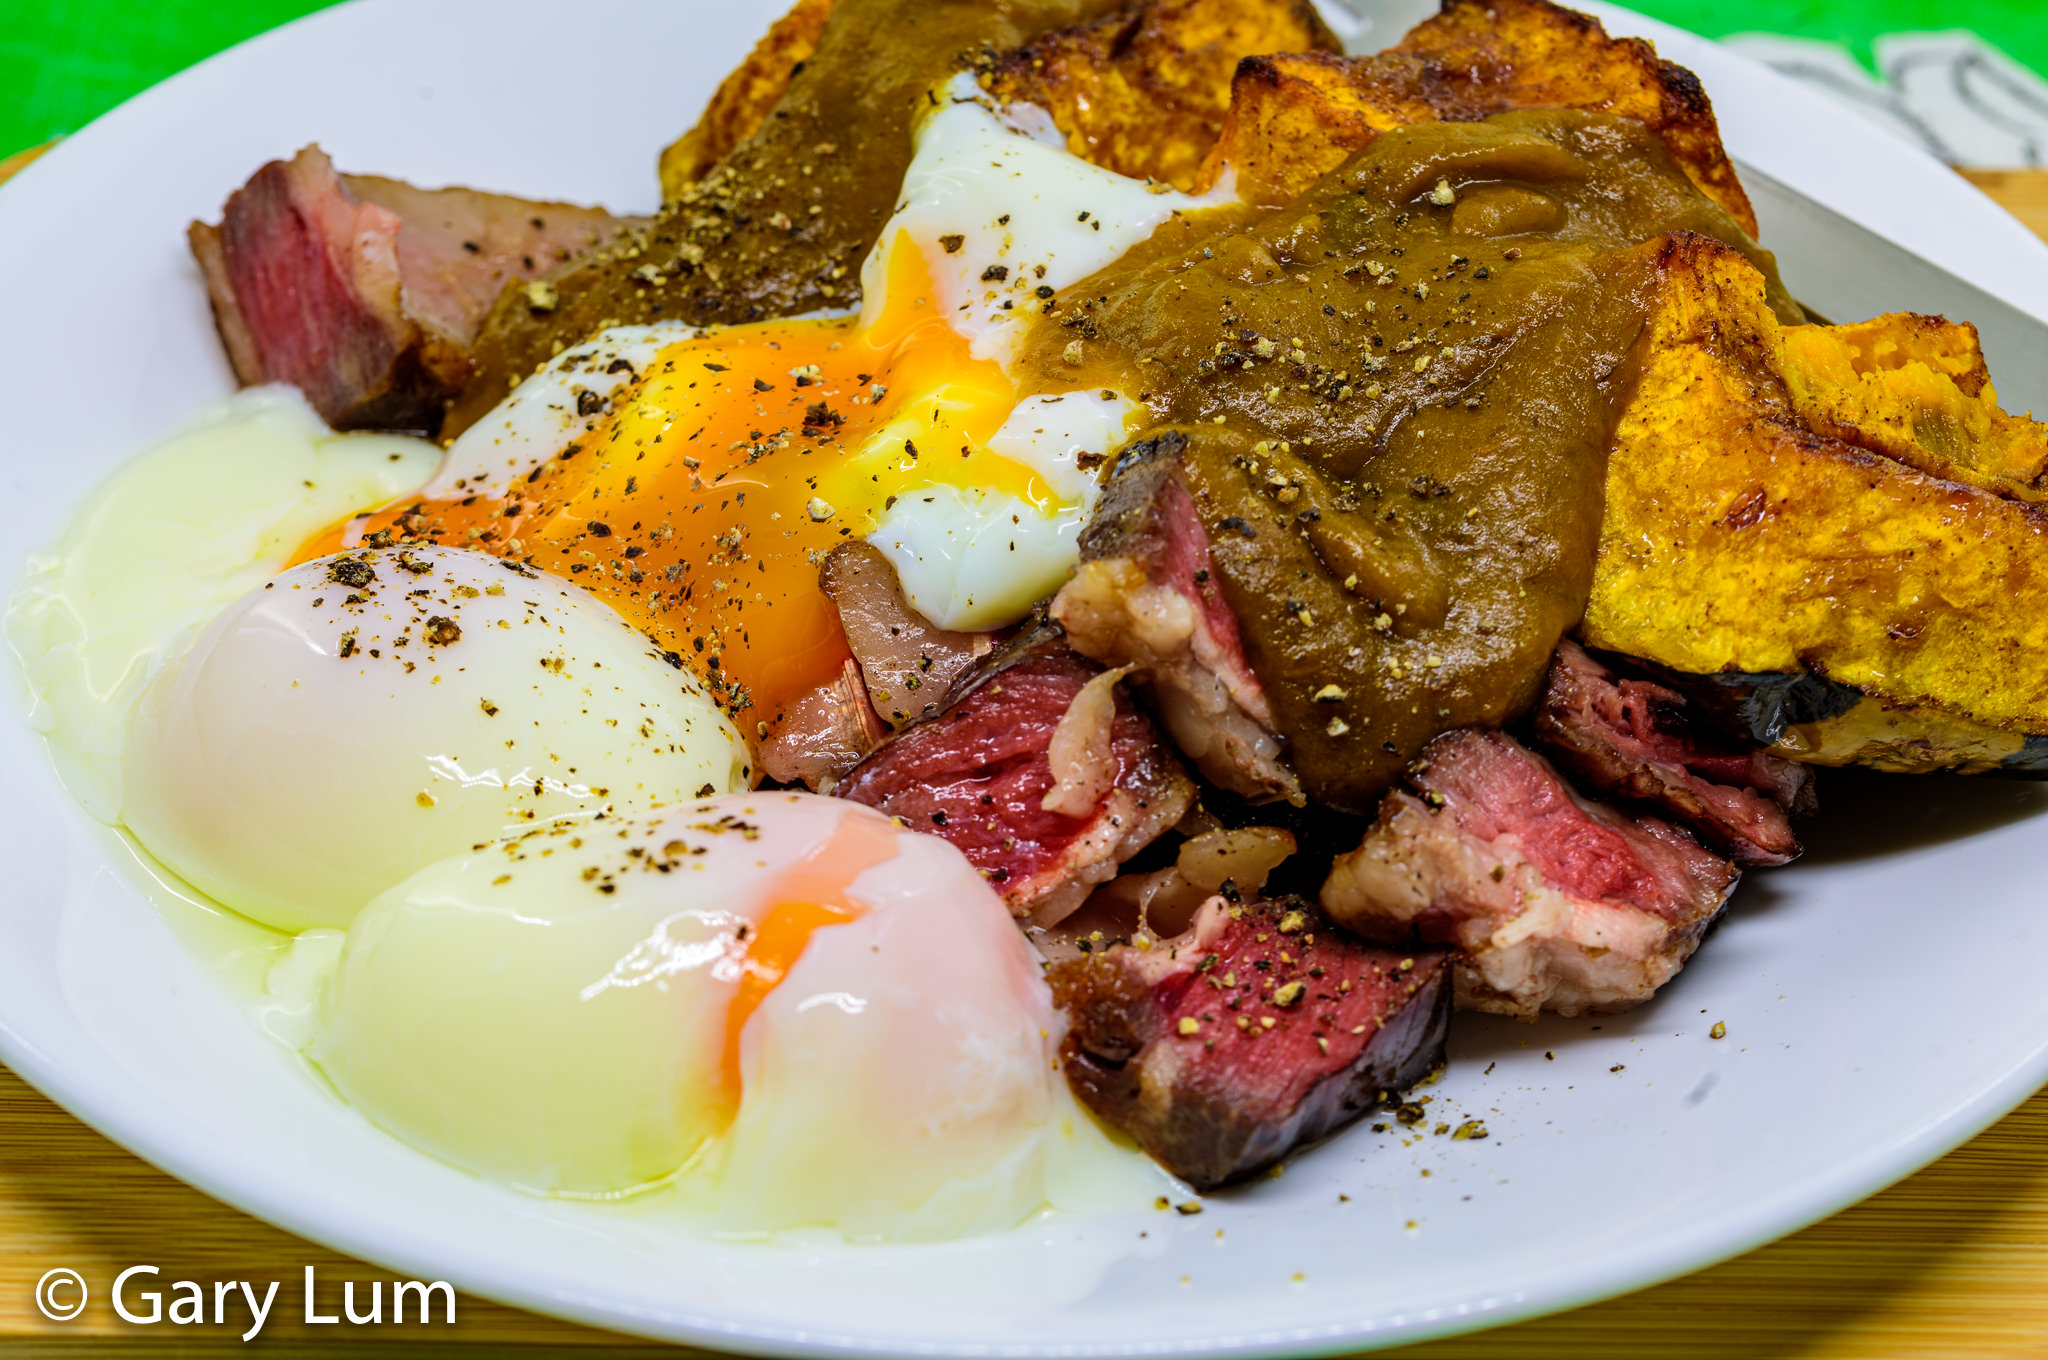 Sous vide 63 °C egg, reverse sear steak, and roast pumpkin